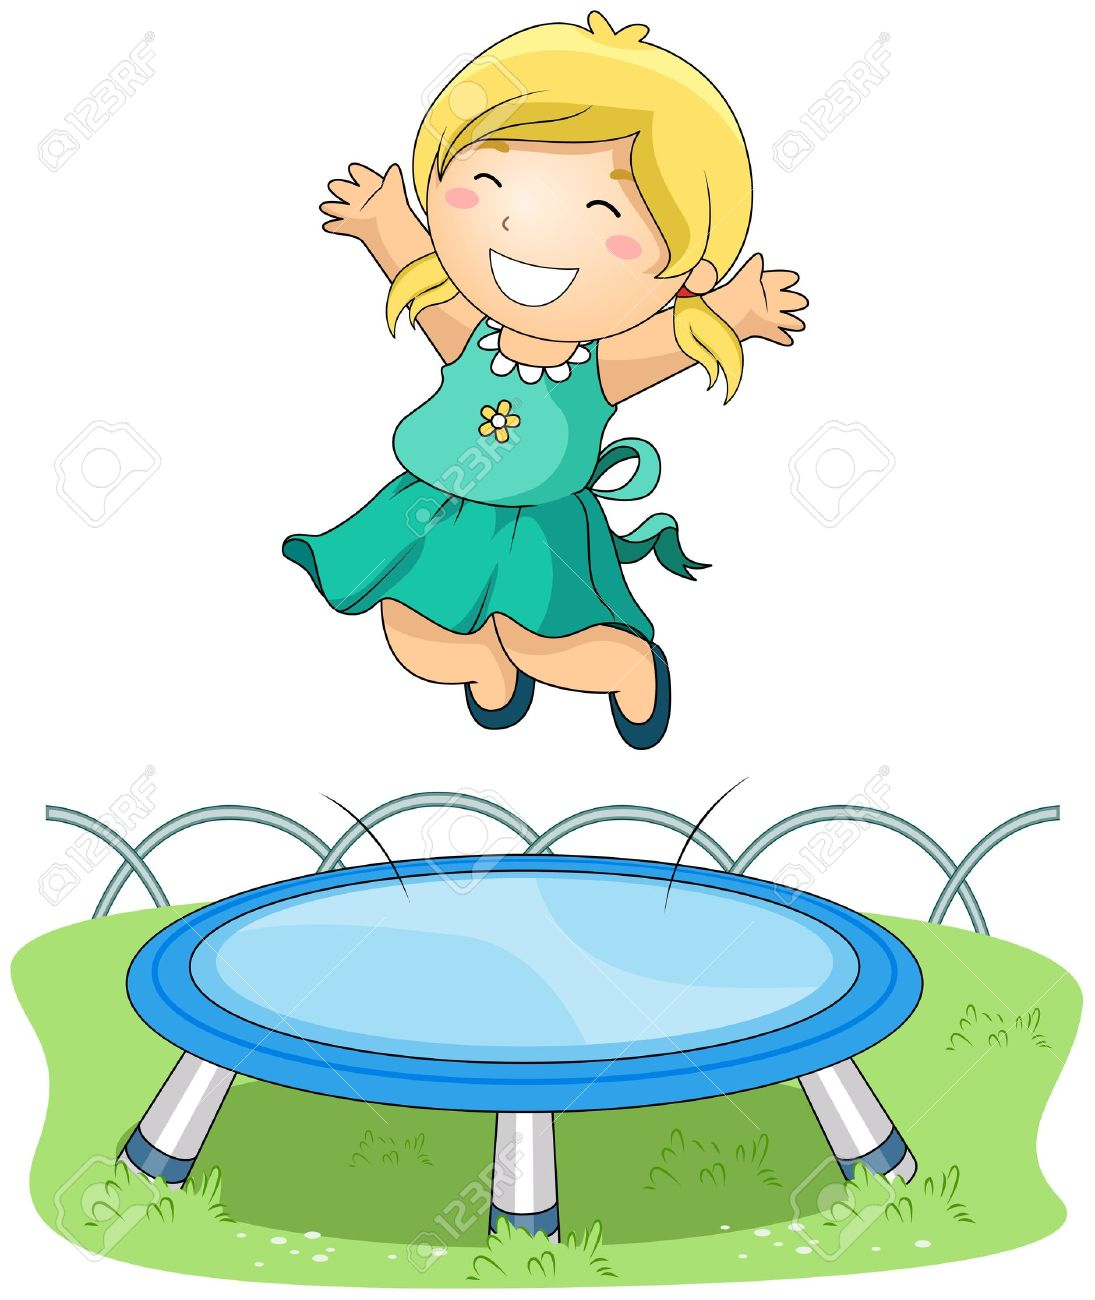 freeuse download Boy and girl jumping. Jump clipart.